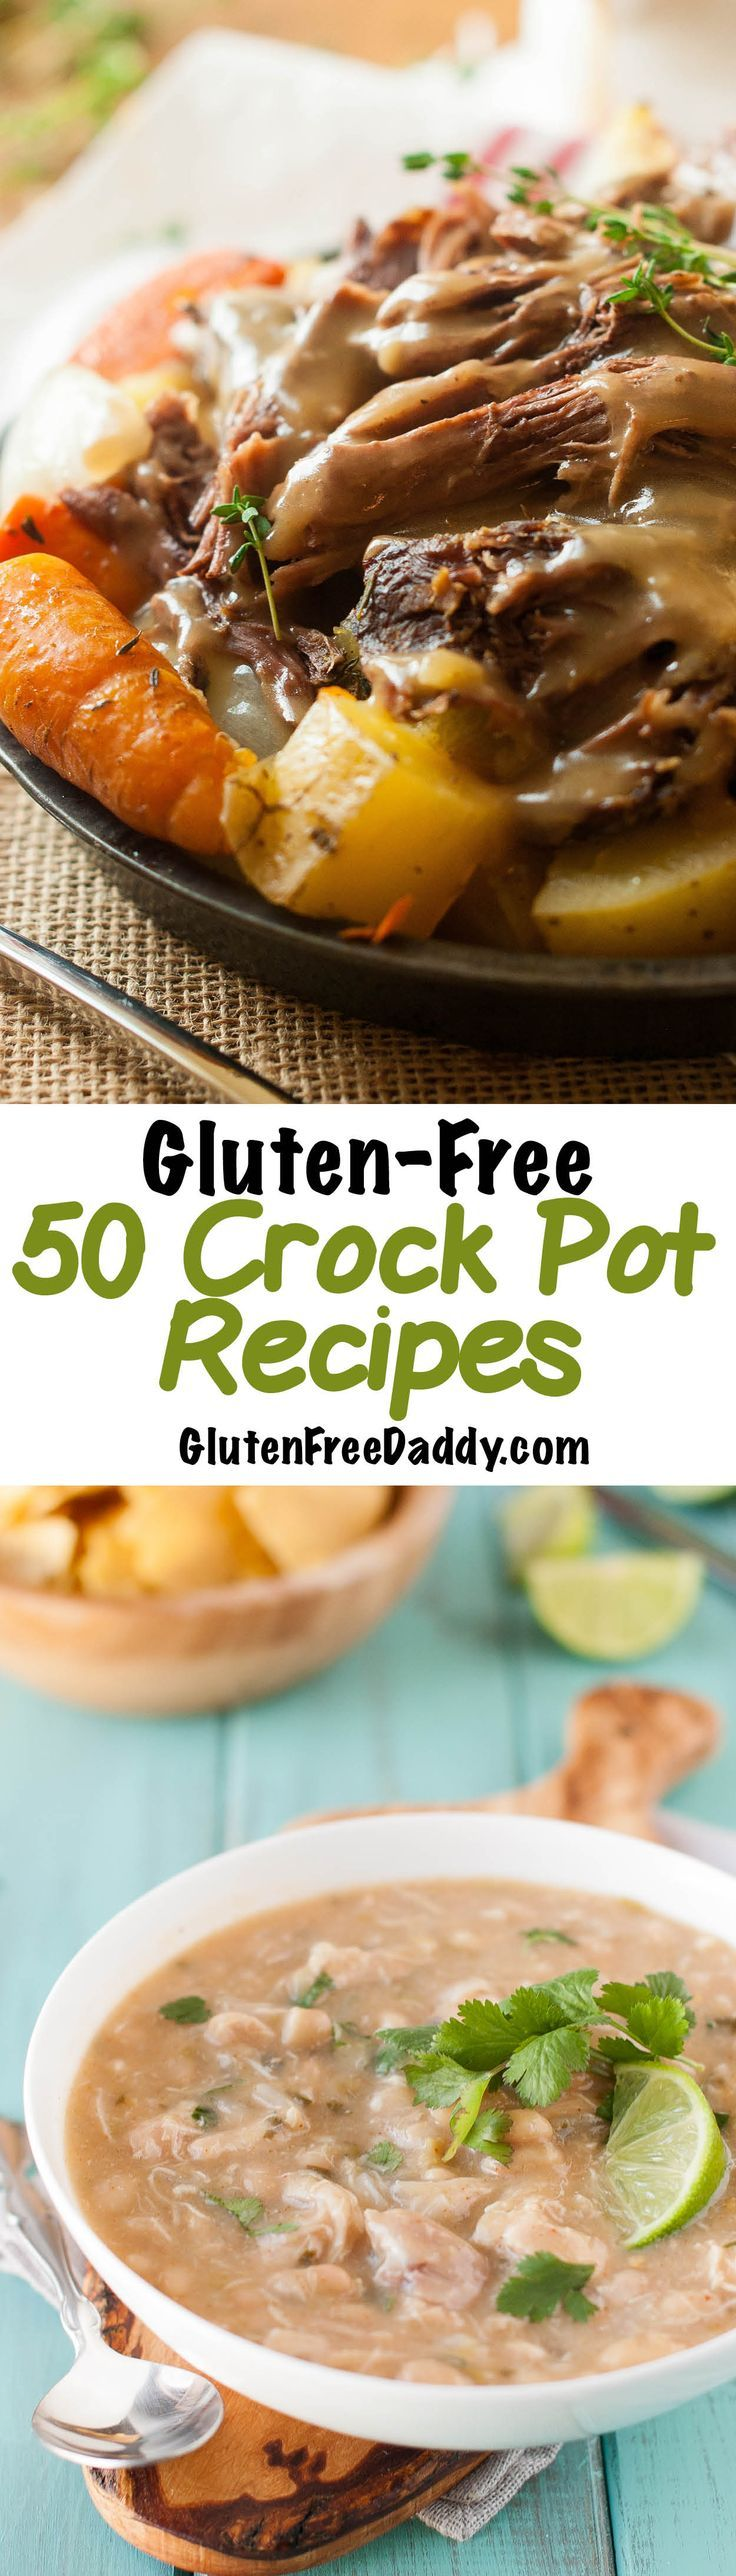 I love this list of gluten-free crock pot recipes. It's so nice to have all the recipes in one place with an image to see what it looks like and a link to get the recipe.